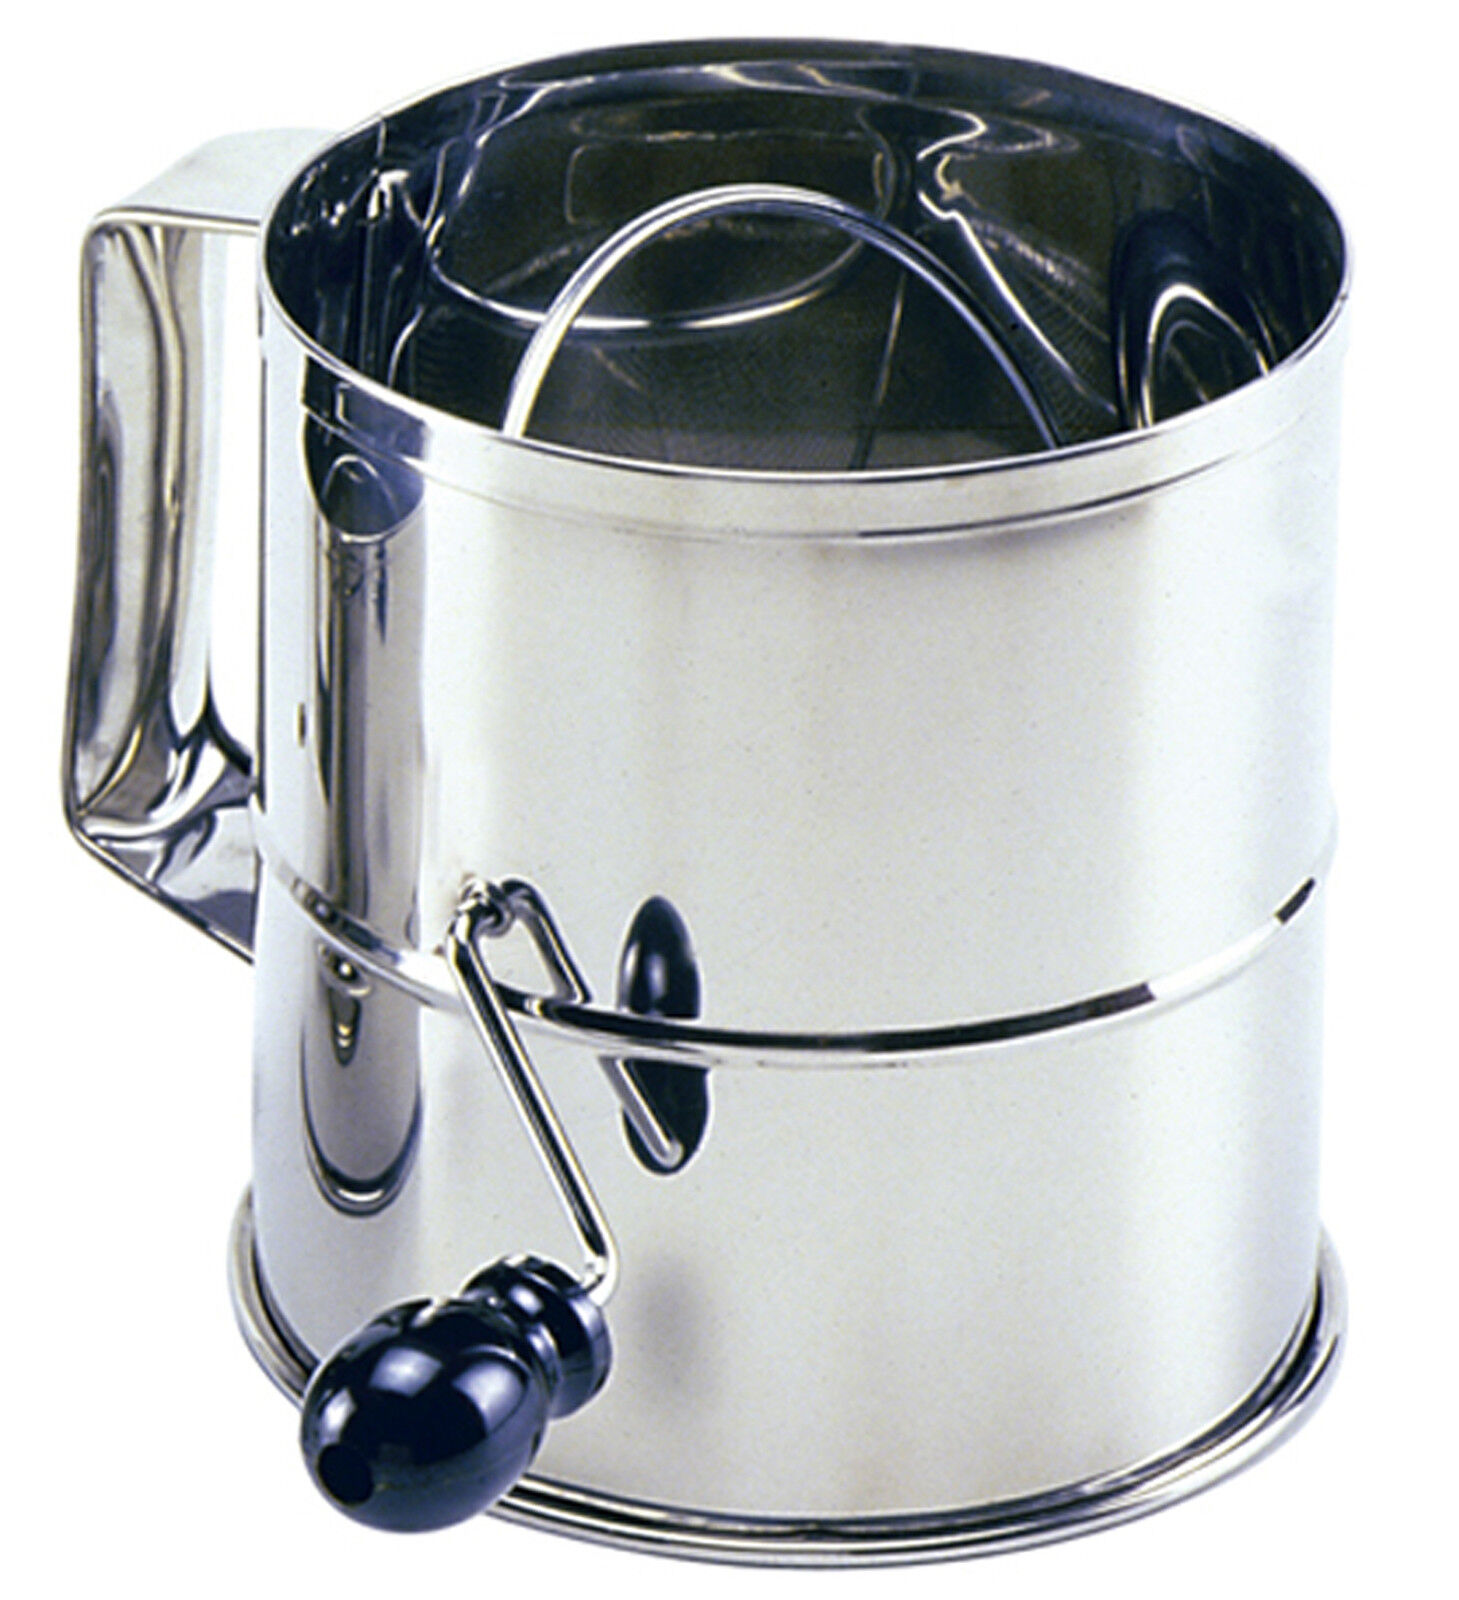 Norpro 146 Professional Rotary Crank Sifter 8 Cup Stainless Steel on sale